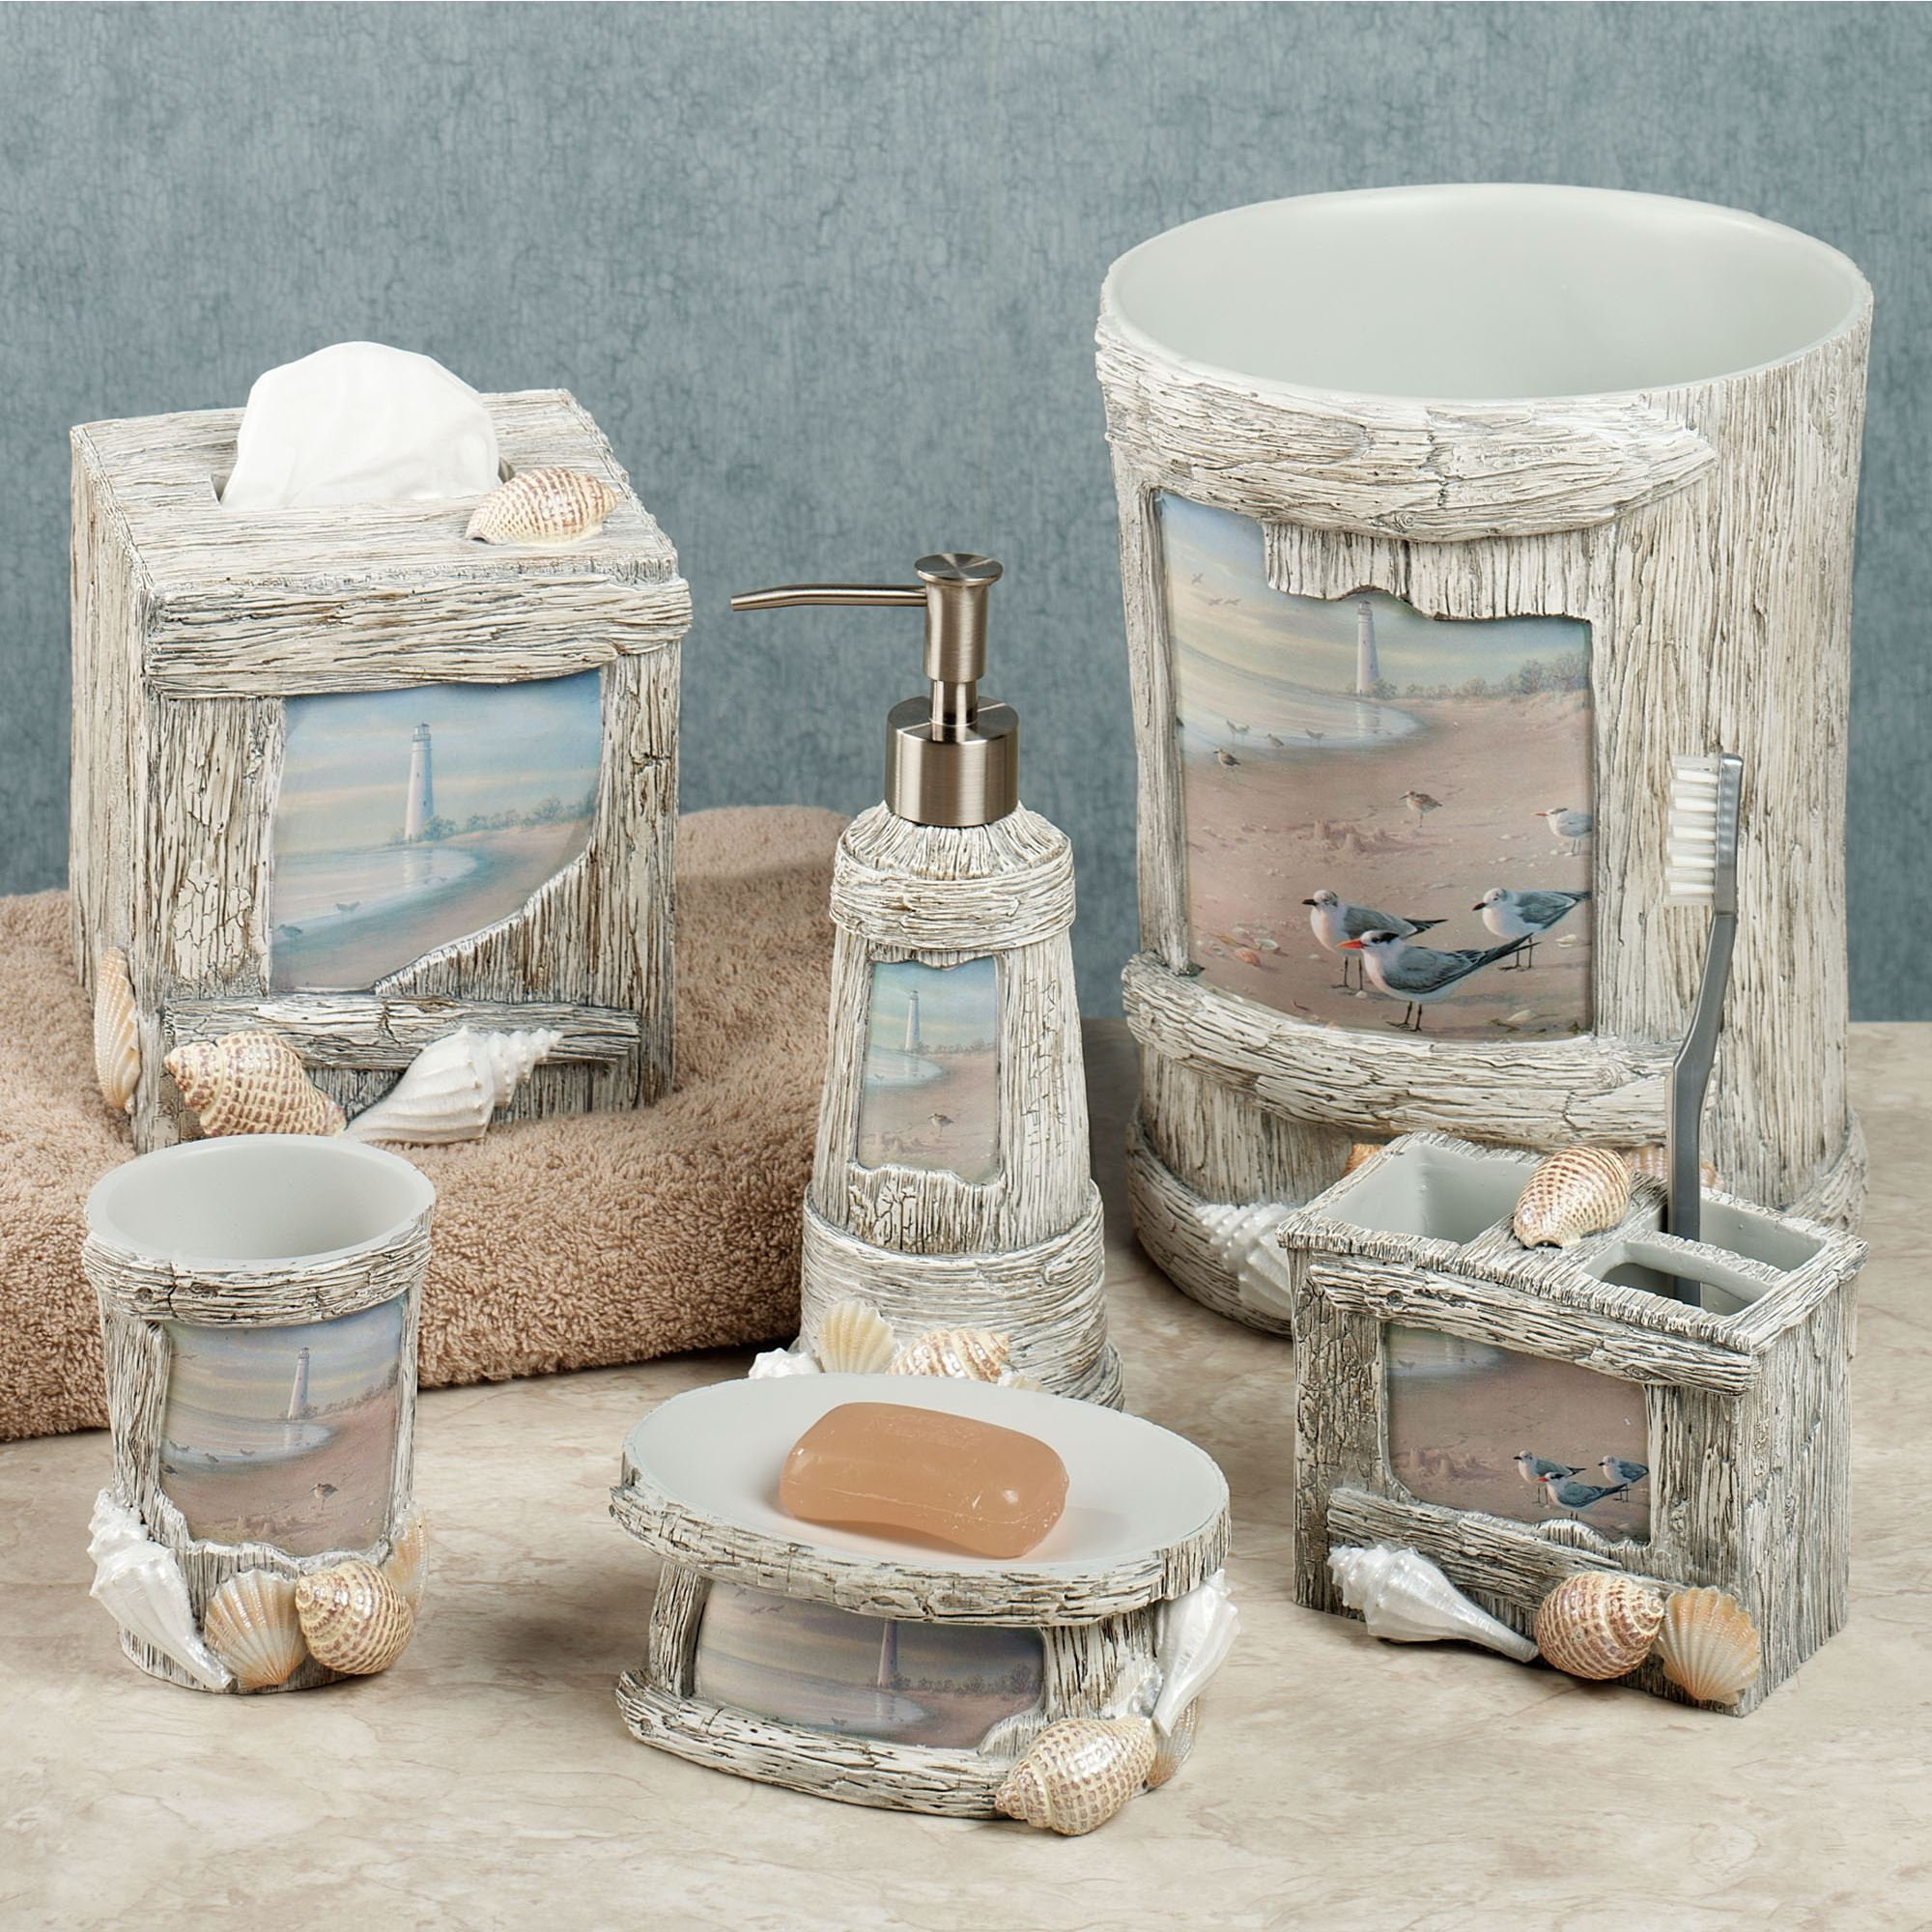 At the beach bath accessories Bathroom decoration accessories